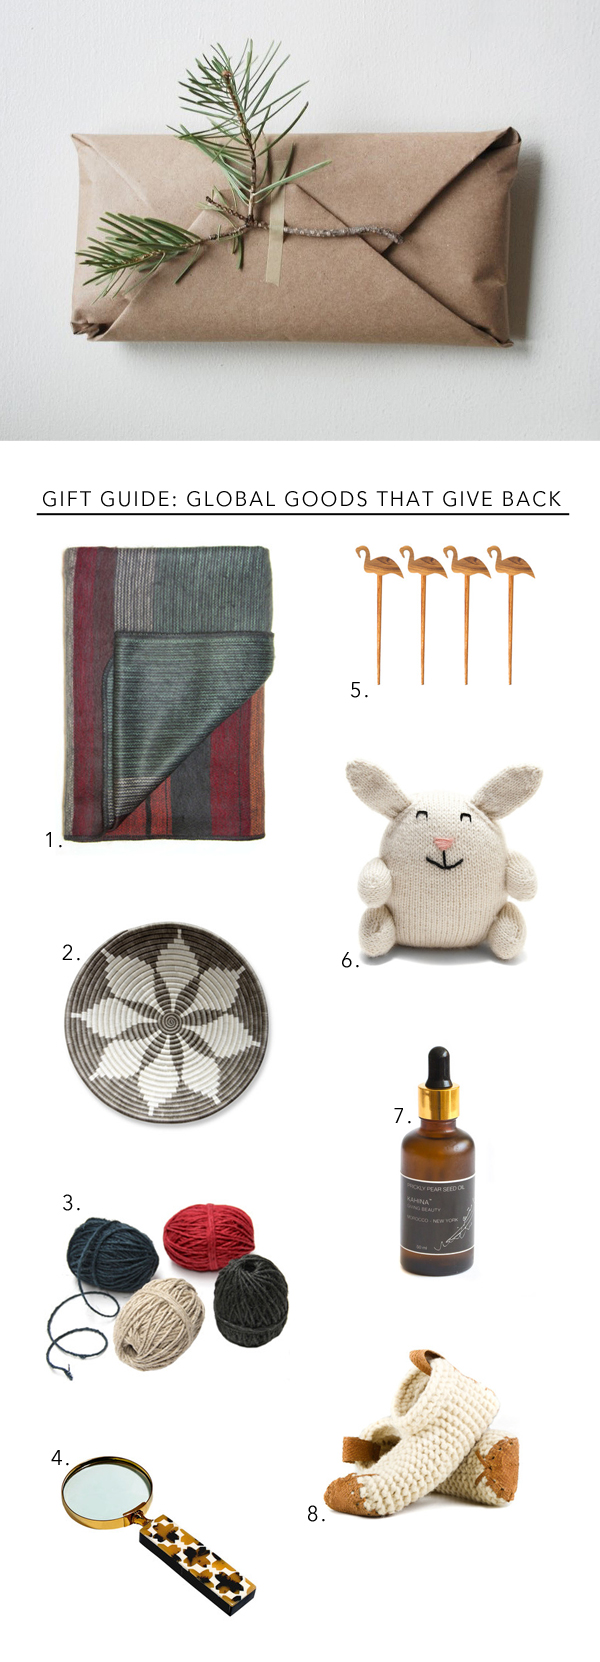 stylish gifts that give back holiday gift guide via Anne Sage